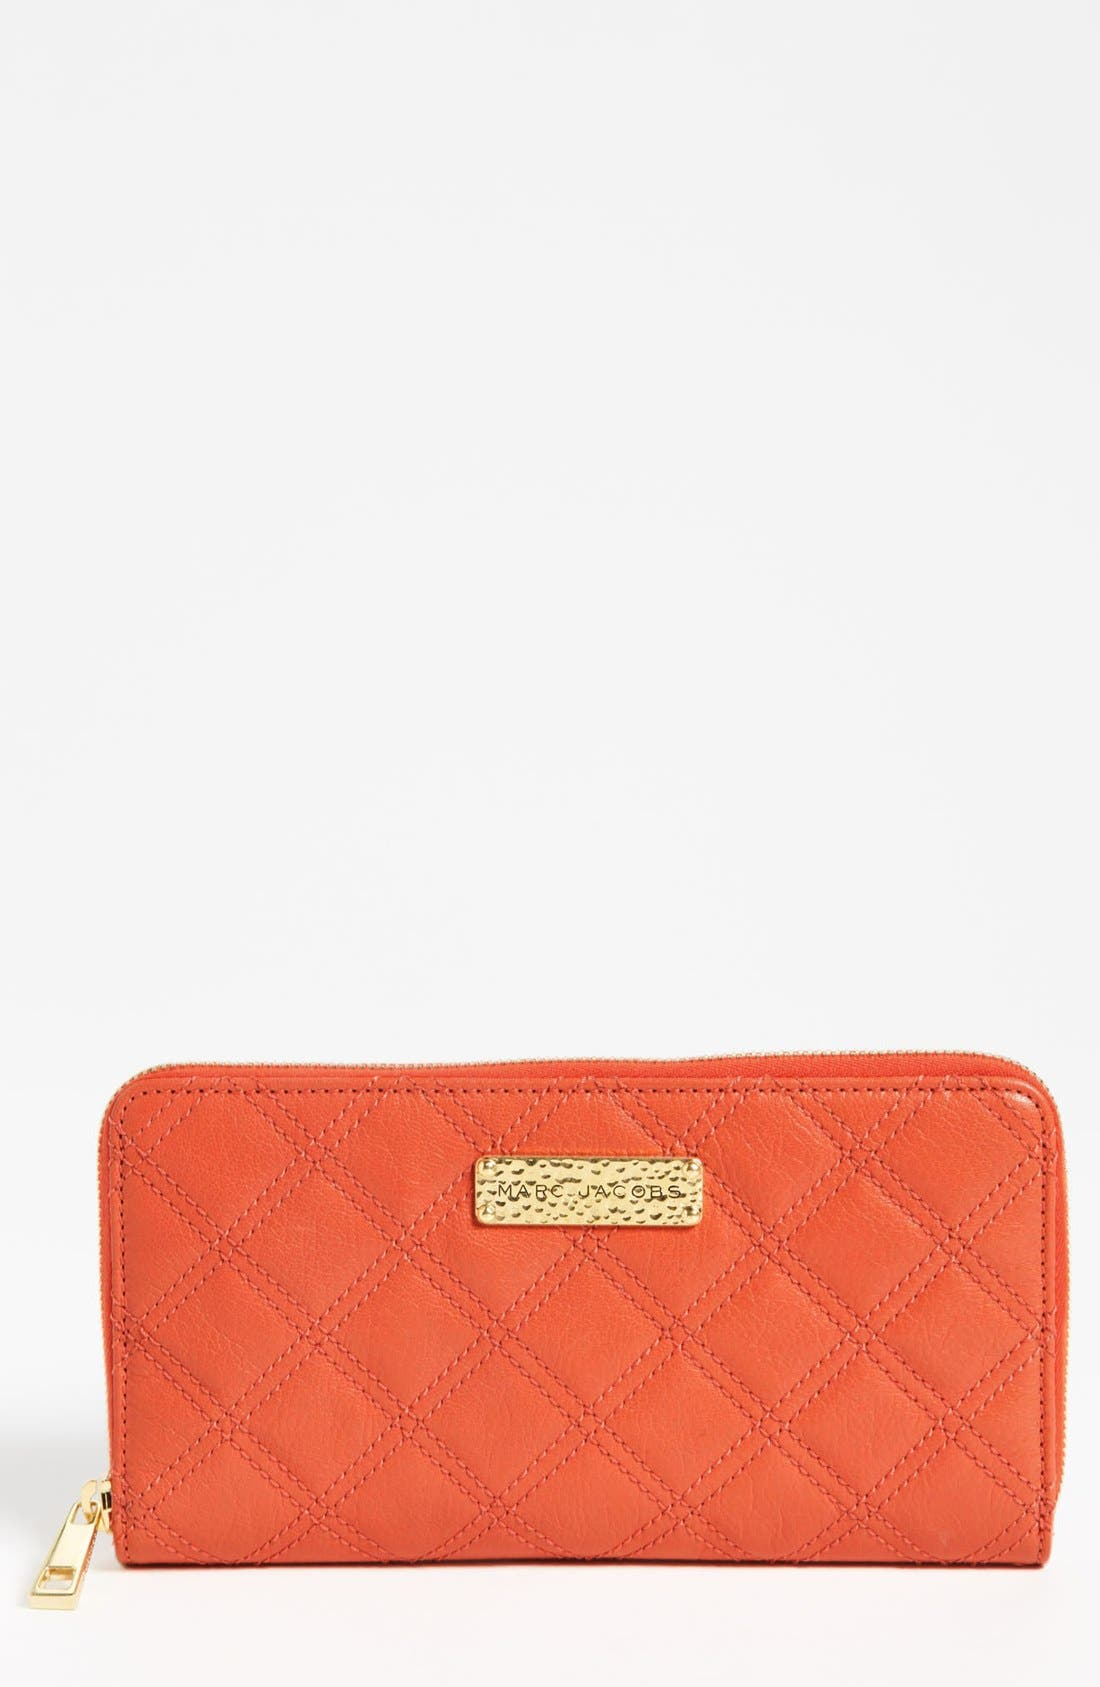 Alternate Image 1 Selected - MARC JACOBS 'Baroque - Sister' Leather Wallet